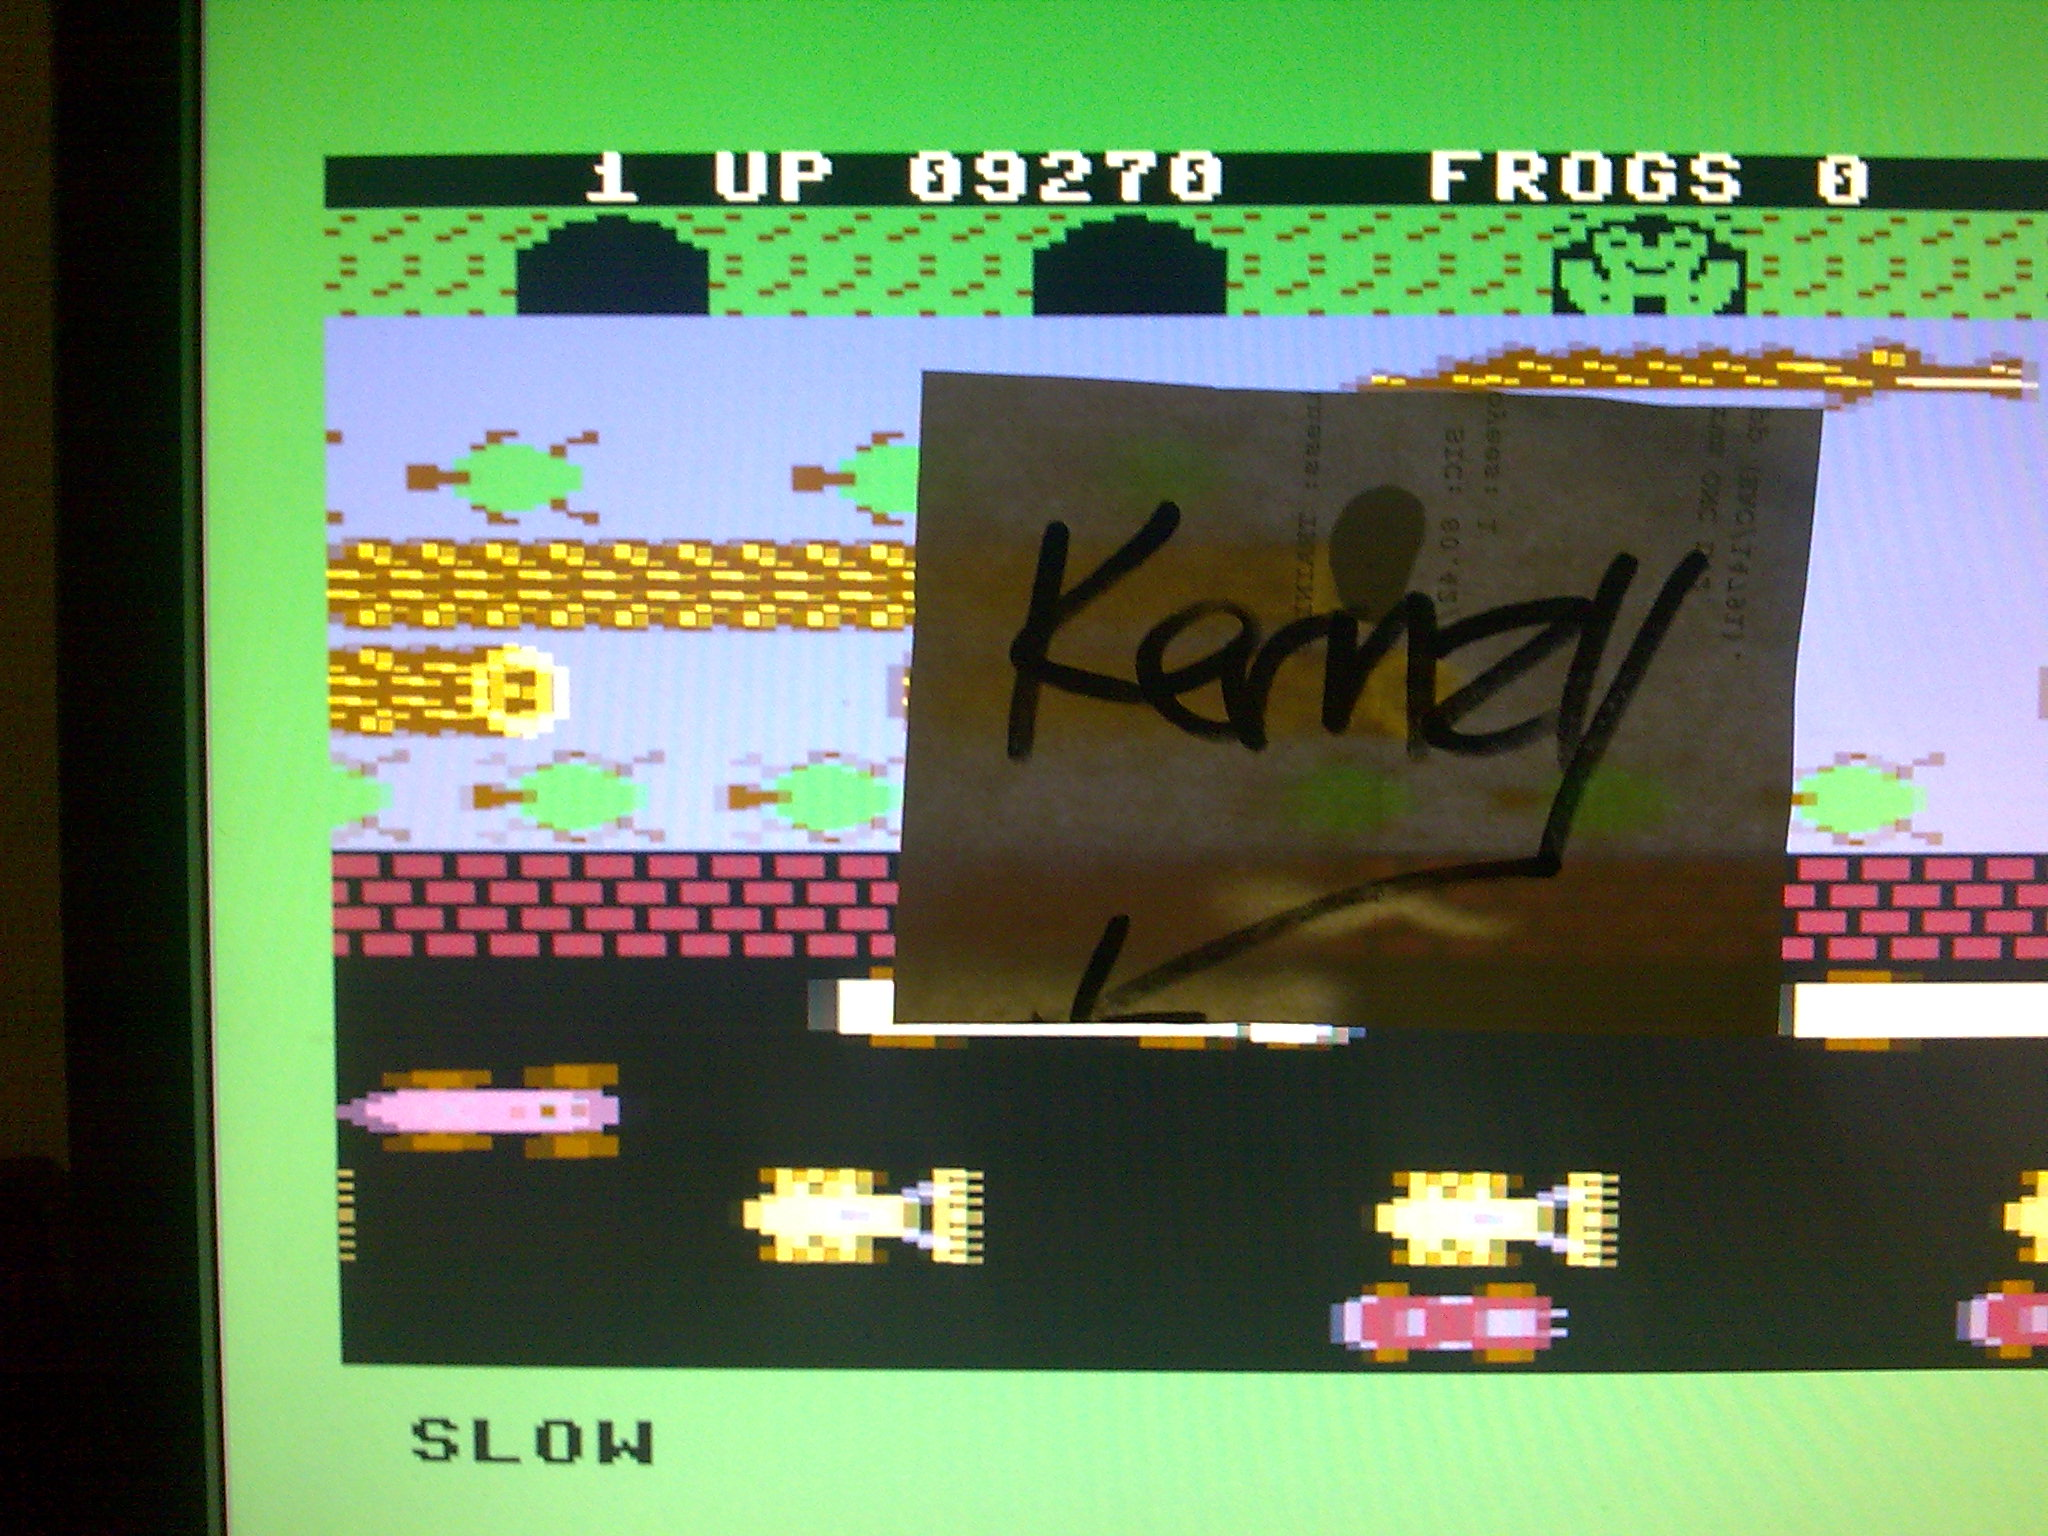 kernzy: Frogger: Parker Bros [Slow] (Commodore 64 Emulated) 9,270 points on 2014-08-30 11:20:16